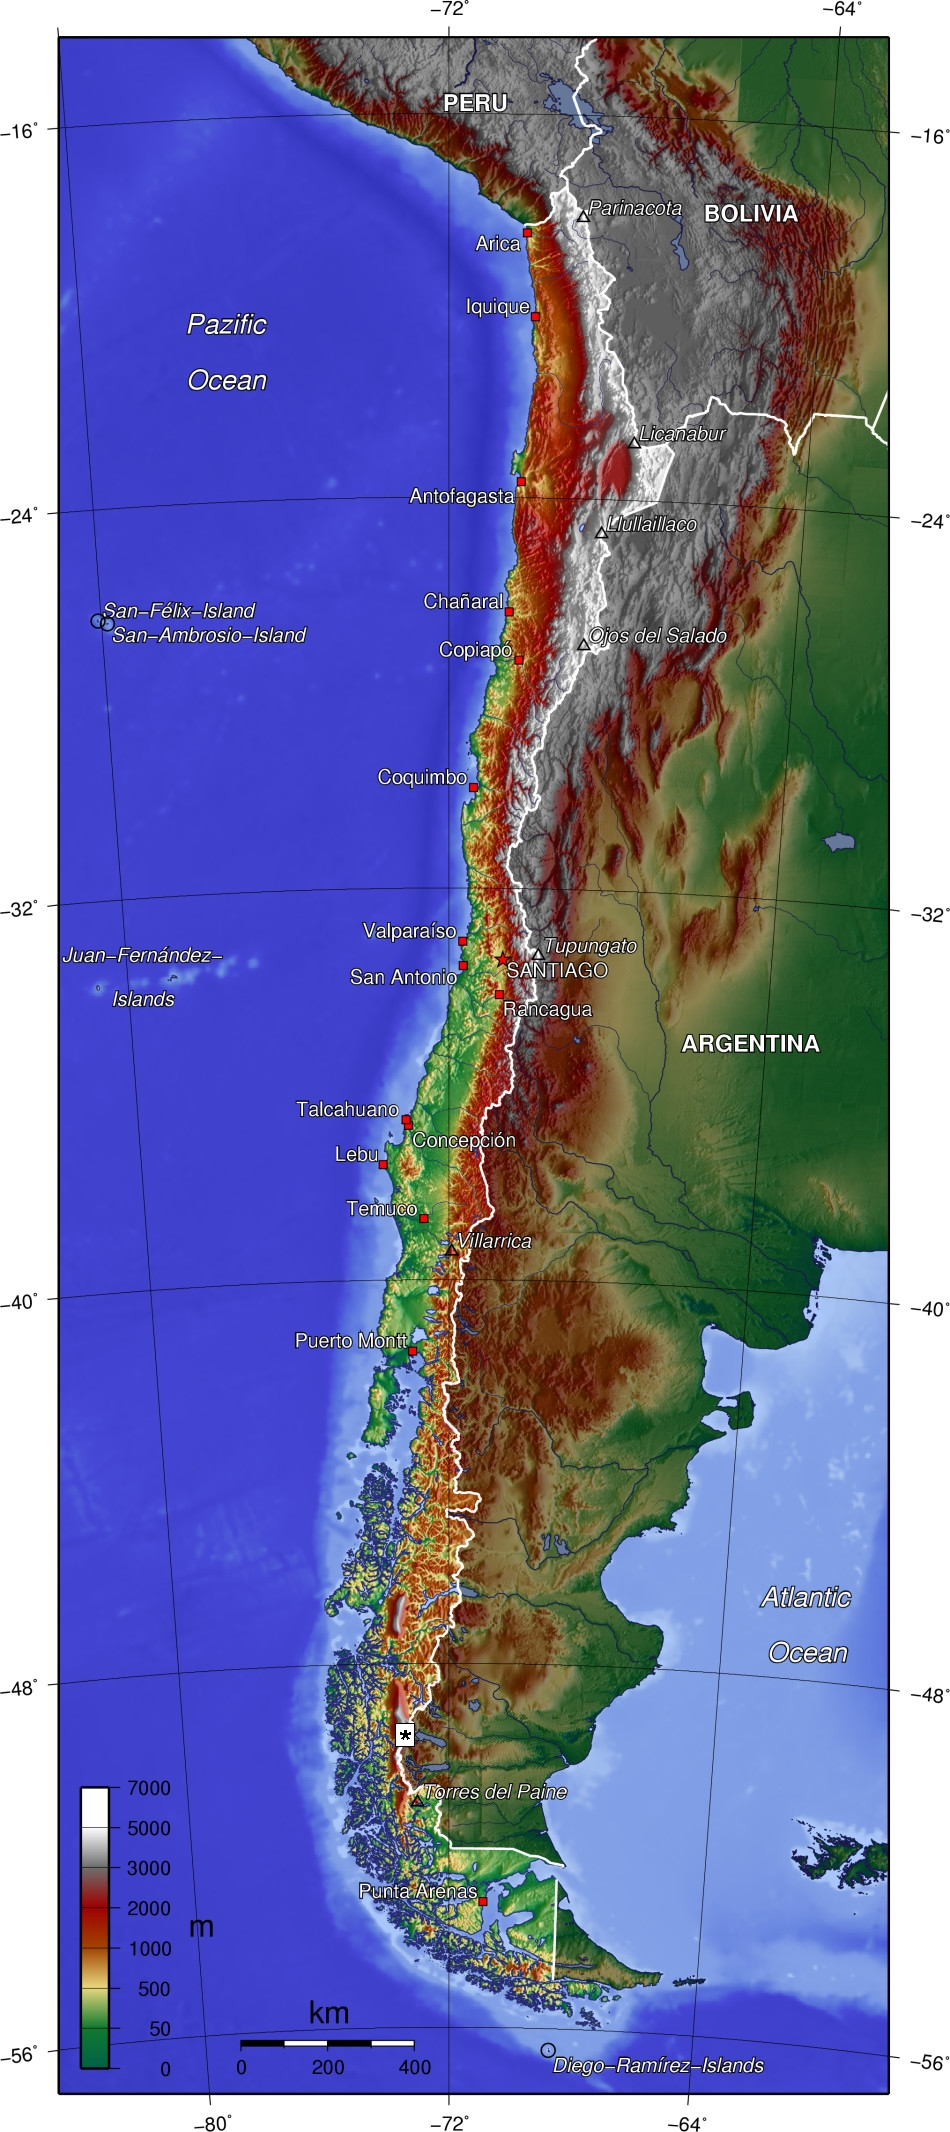 FileChile Topo Enjpg Wikimedia Commons - Map of chile